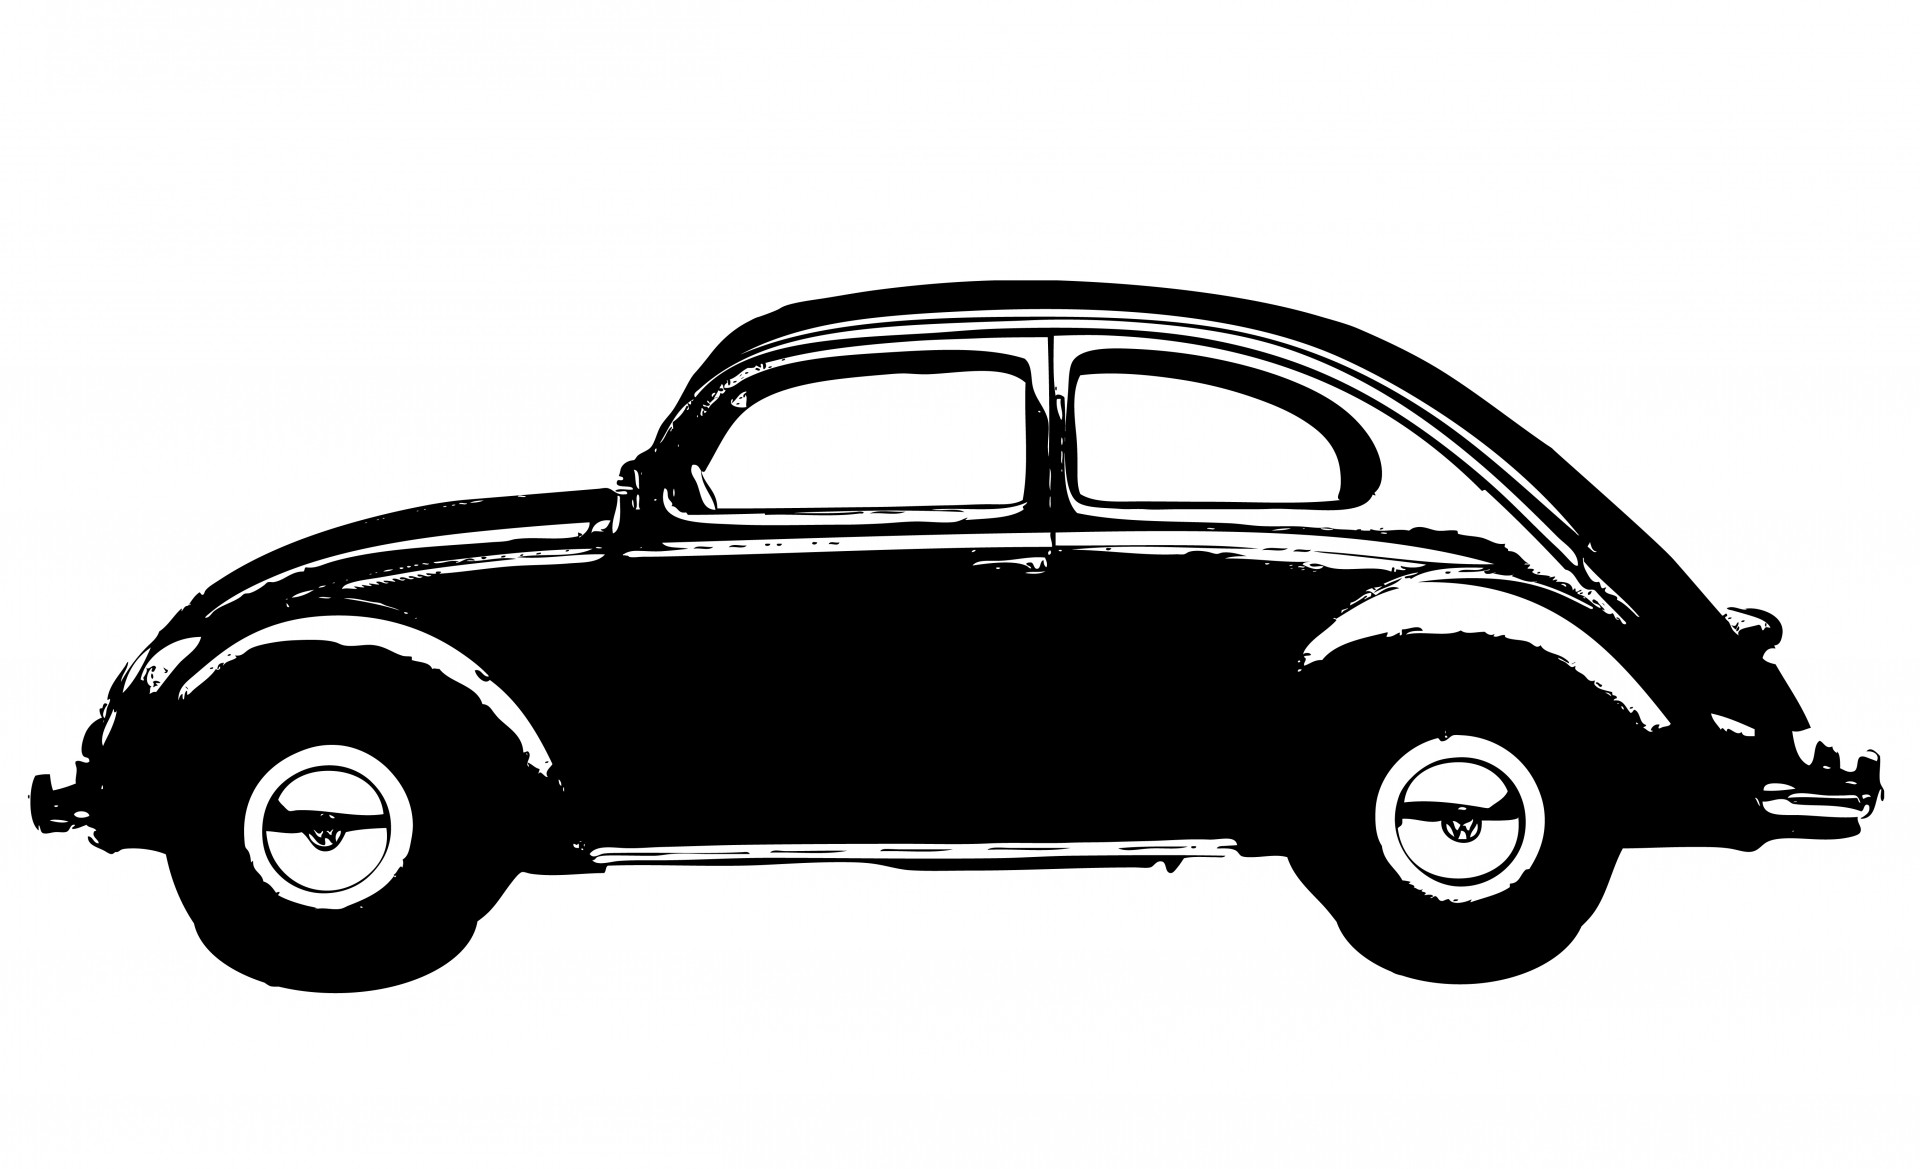 Vintage Car Black Clipart Free Stock Photo.